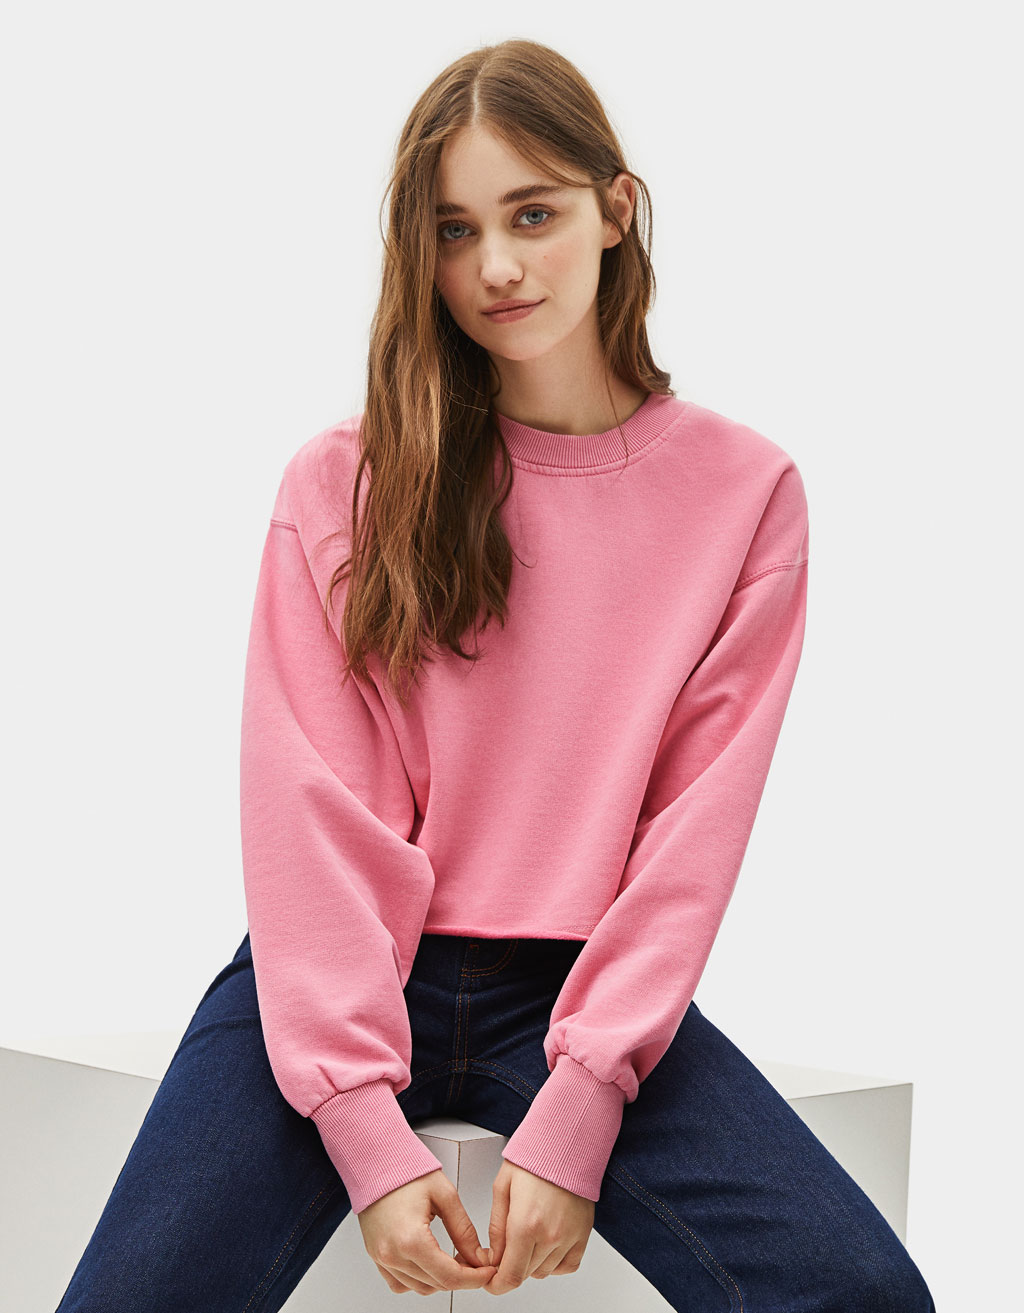 Cropped sweatshirt